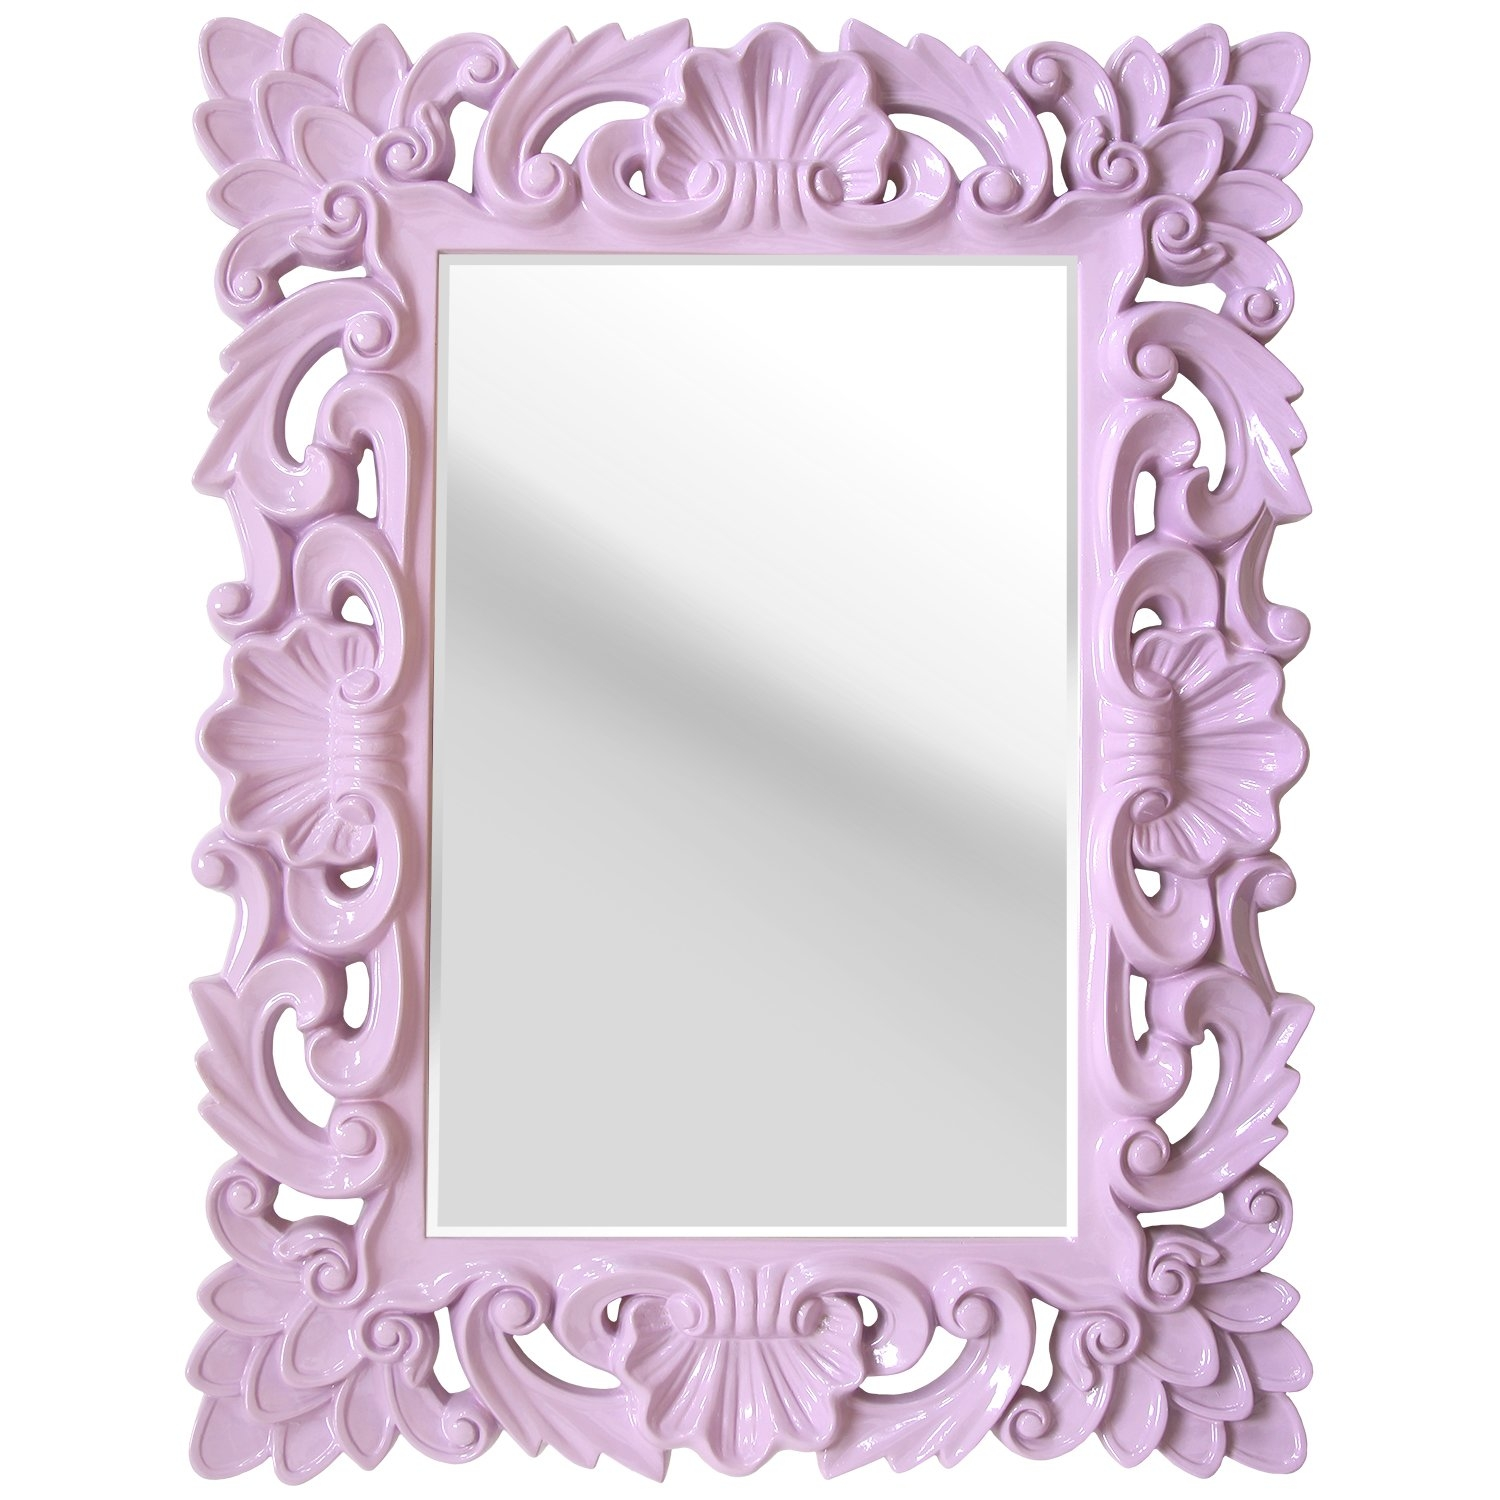 Stratton Home Decor Elegant Ornate Wall Mirror Reviews Wayfair Throughout Ornate Wall Mirror (Image 10 of 15)